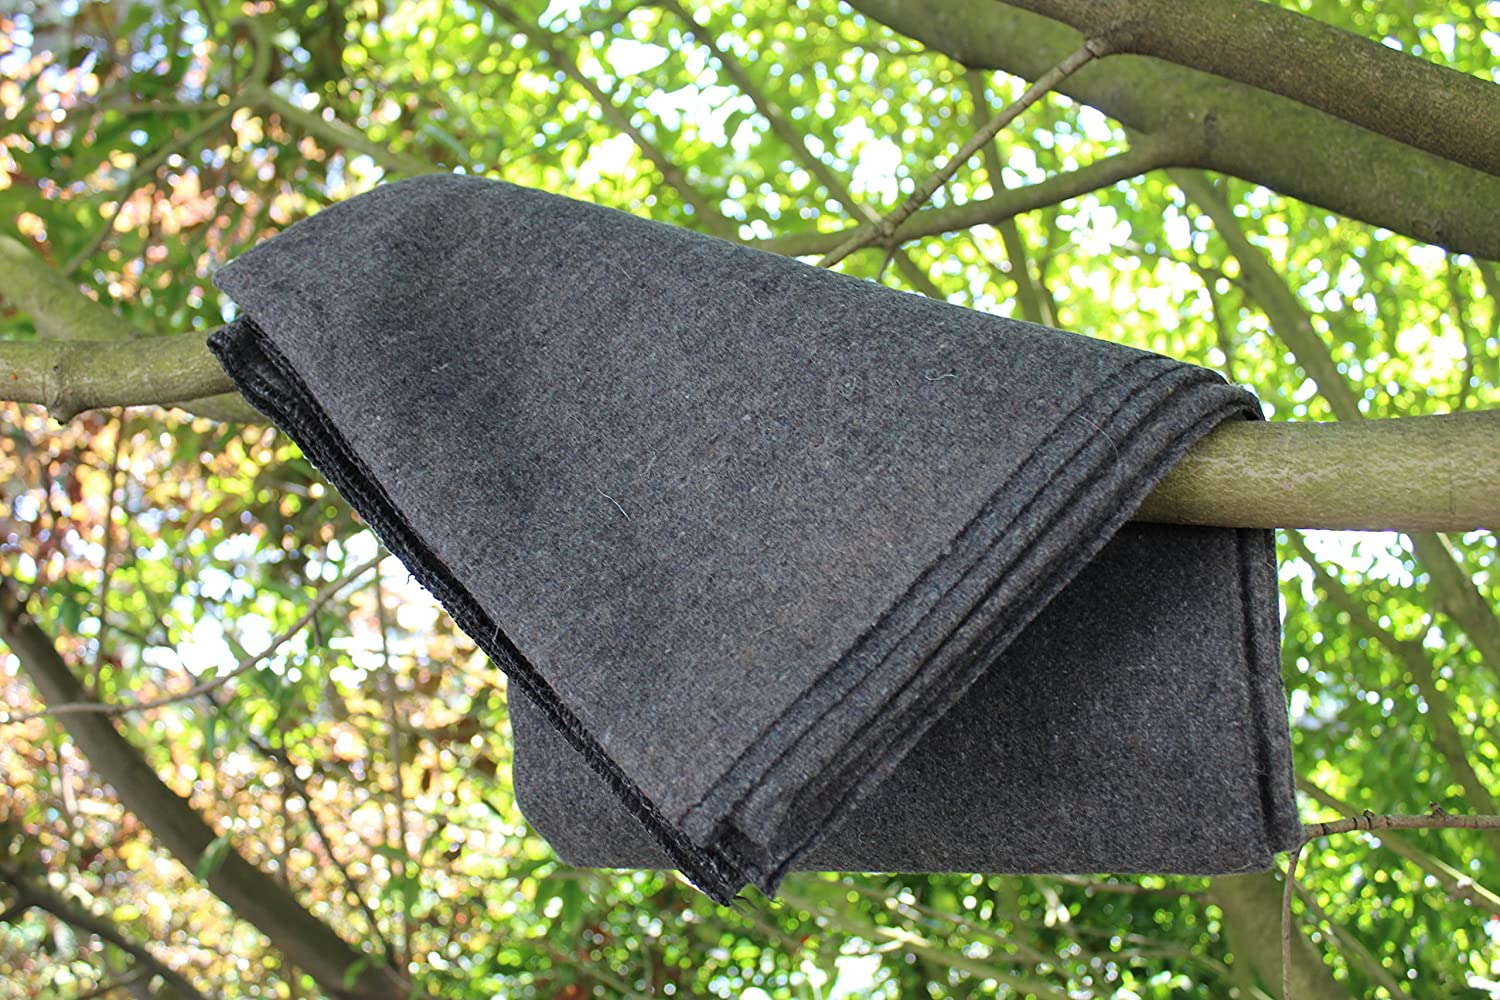 """Ready First Aid™ (50% Wool Blanket), 51"""" x 80"""", 2LBS, Gray Colour Ready First AidTM"""